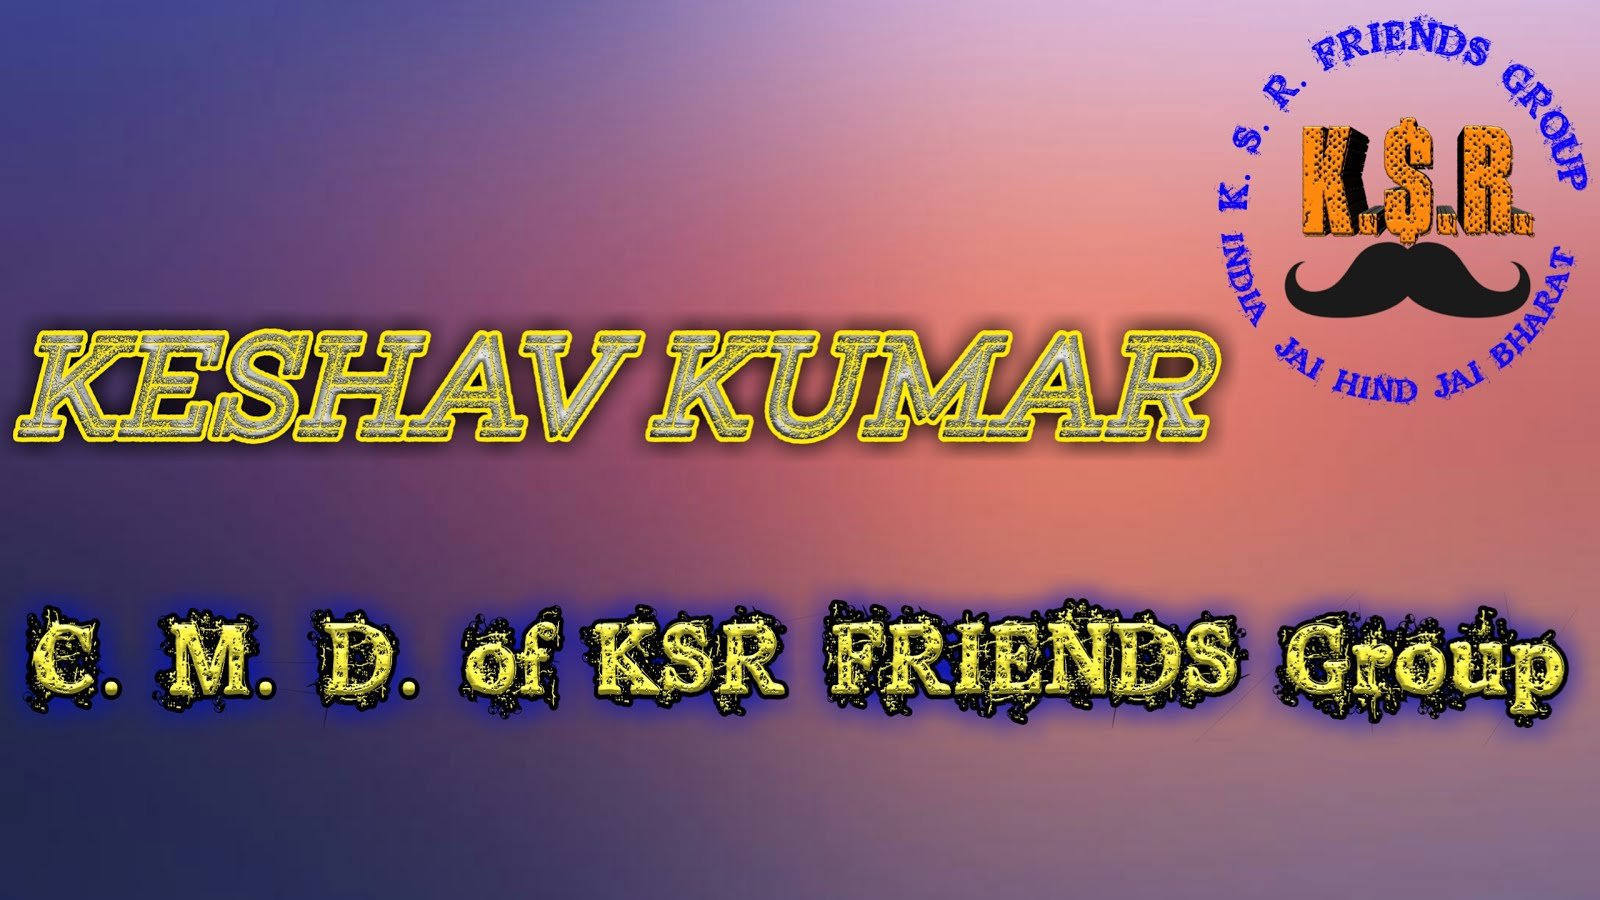 KSR FRIENDS GROUP